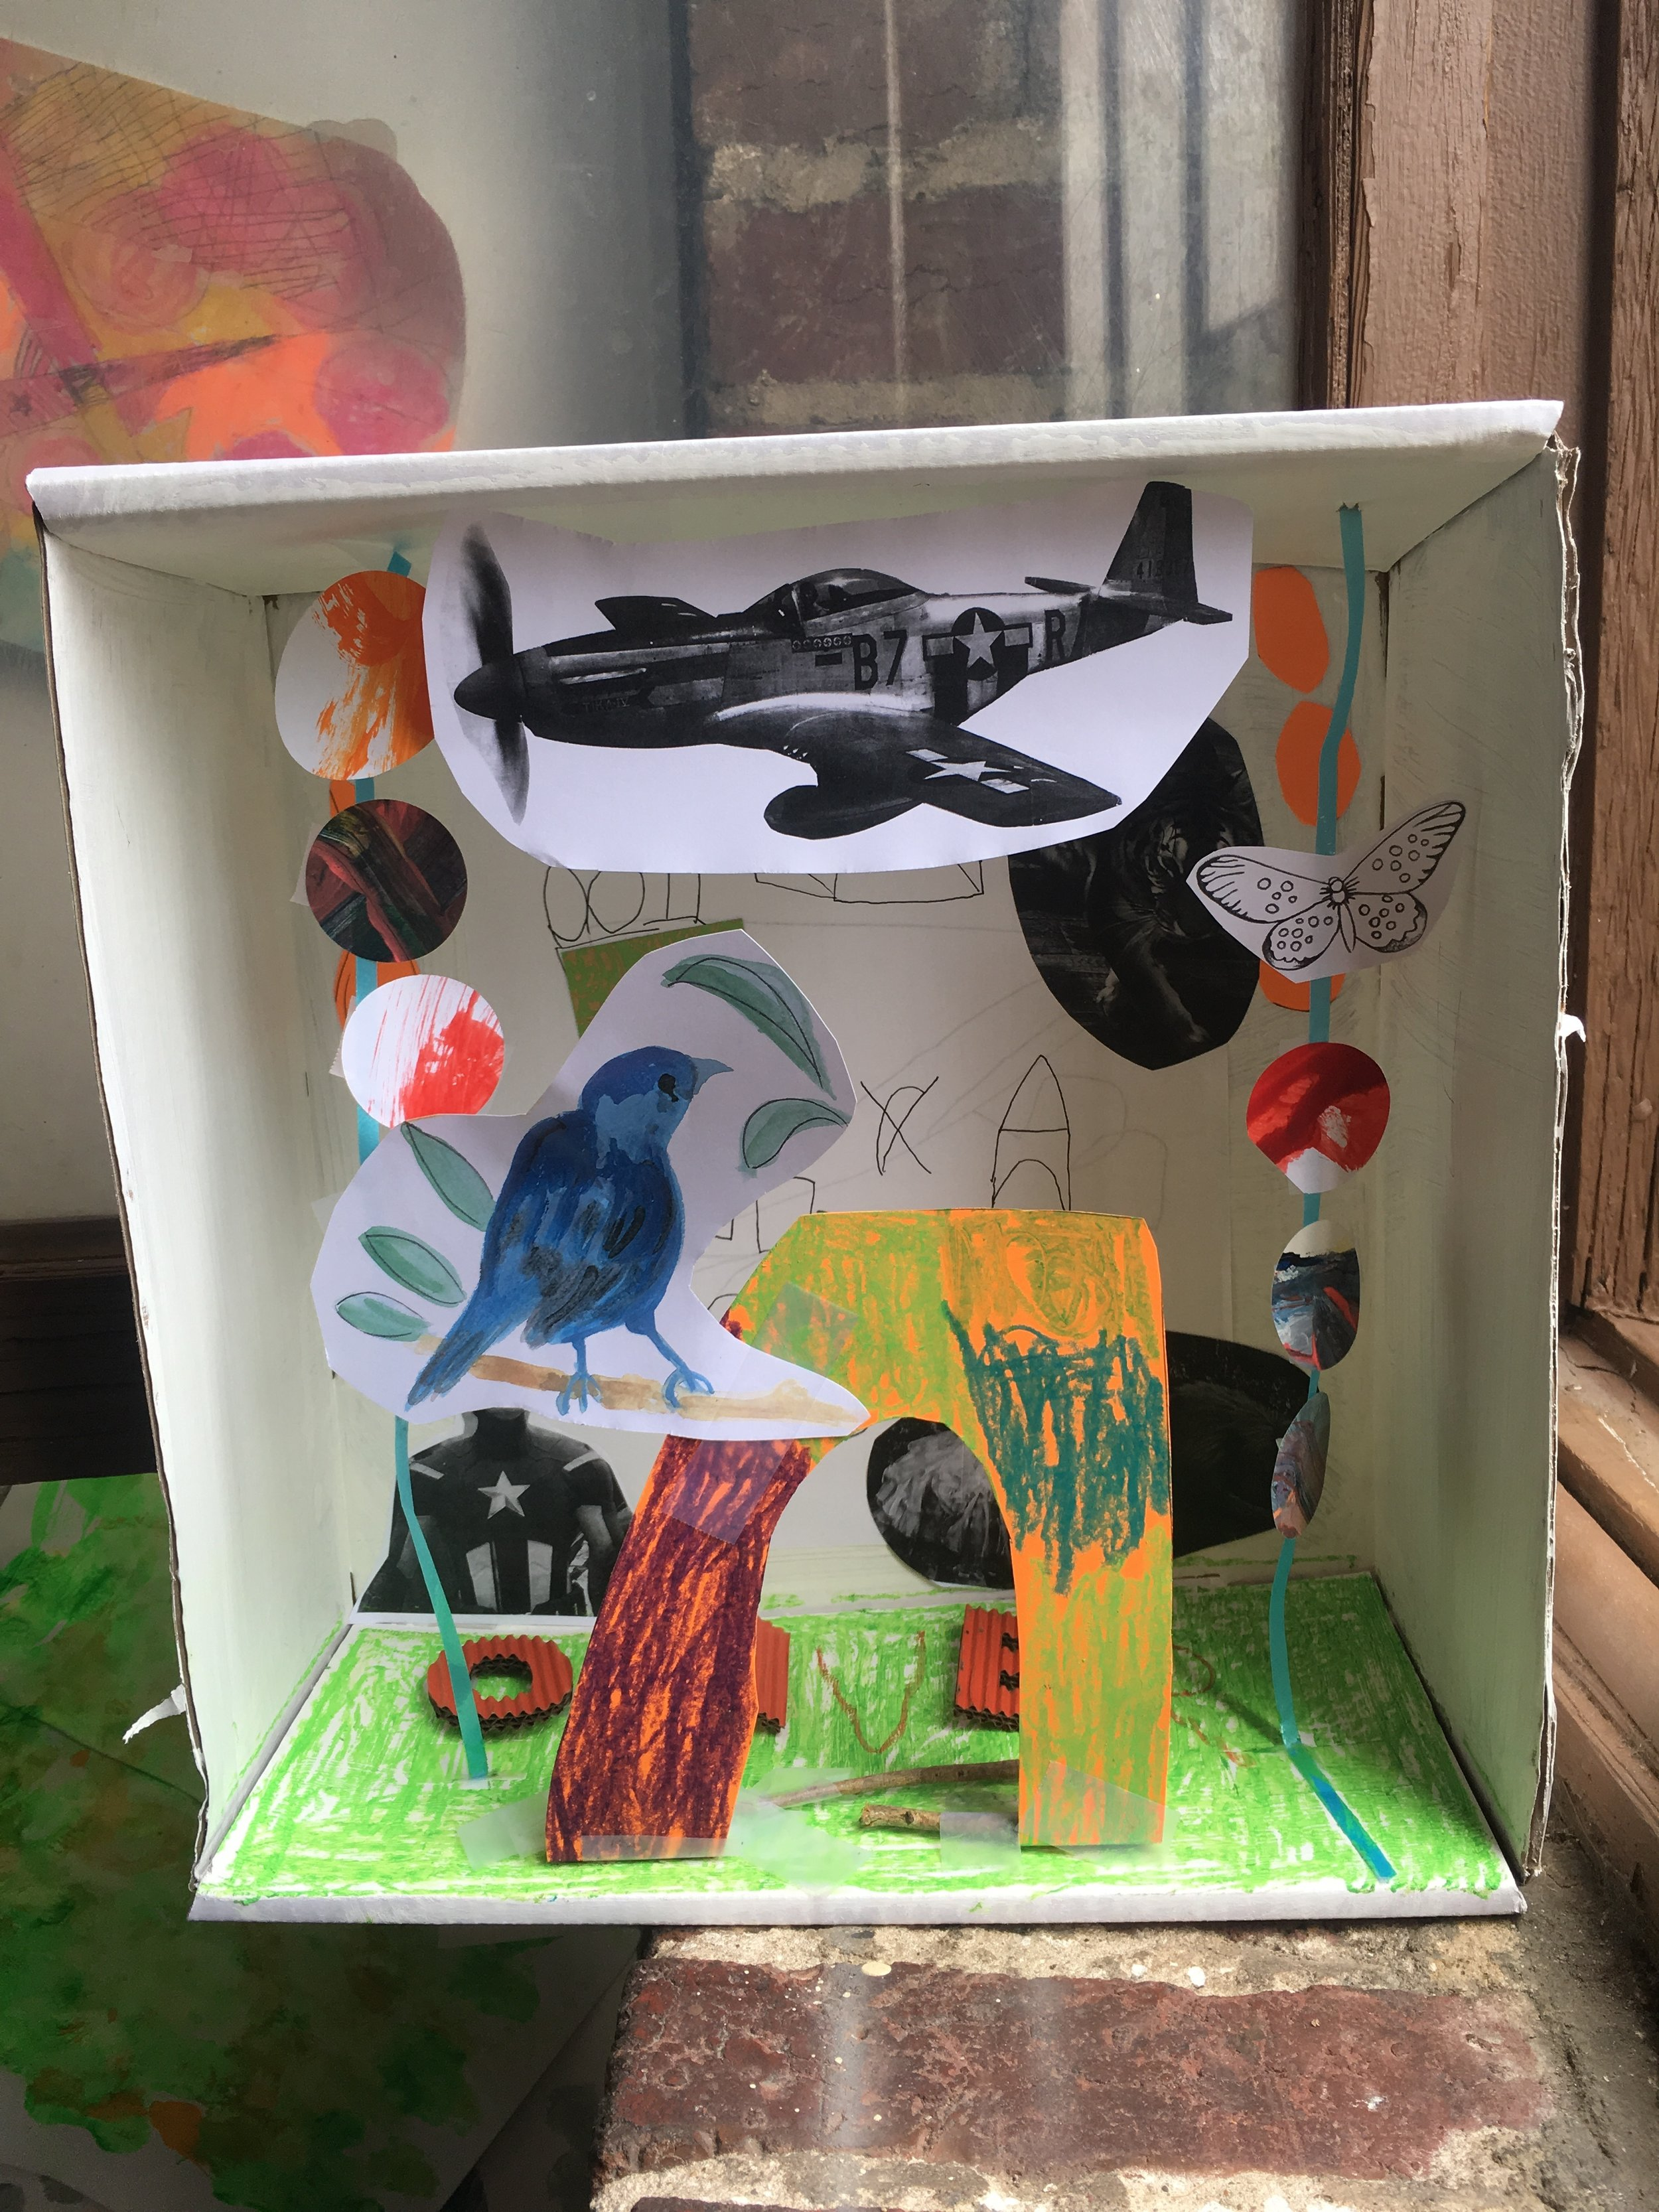 Box and Collage  - After being introduced to Joseph Cornell's shadow boxes, this little artist used his imagination to create this world in a white cardboard box, cutting and pasting provided xeroxed images, found papers and strings. Colors were added with oil crayons and colored papers.